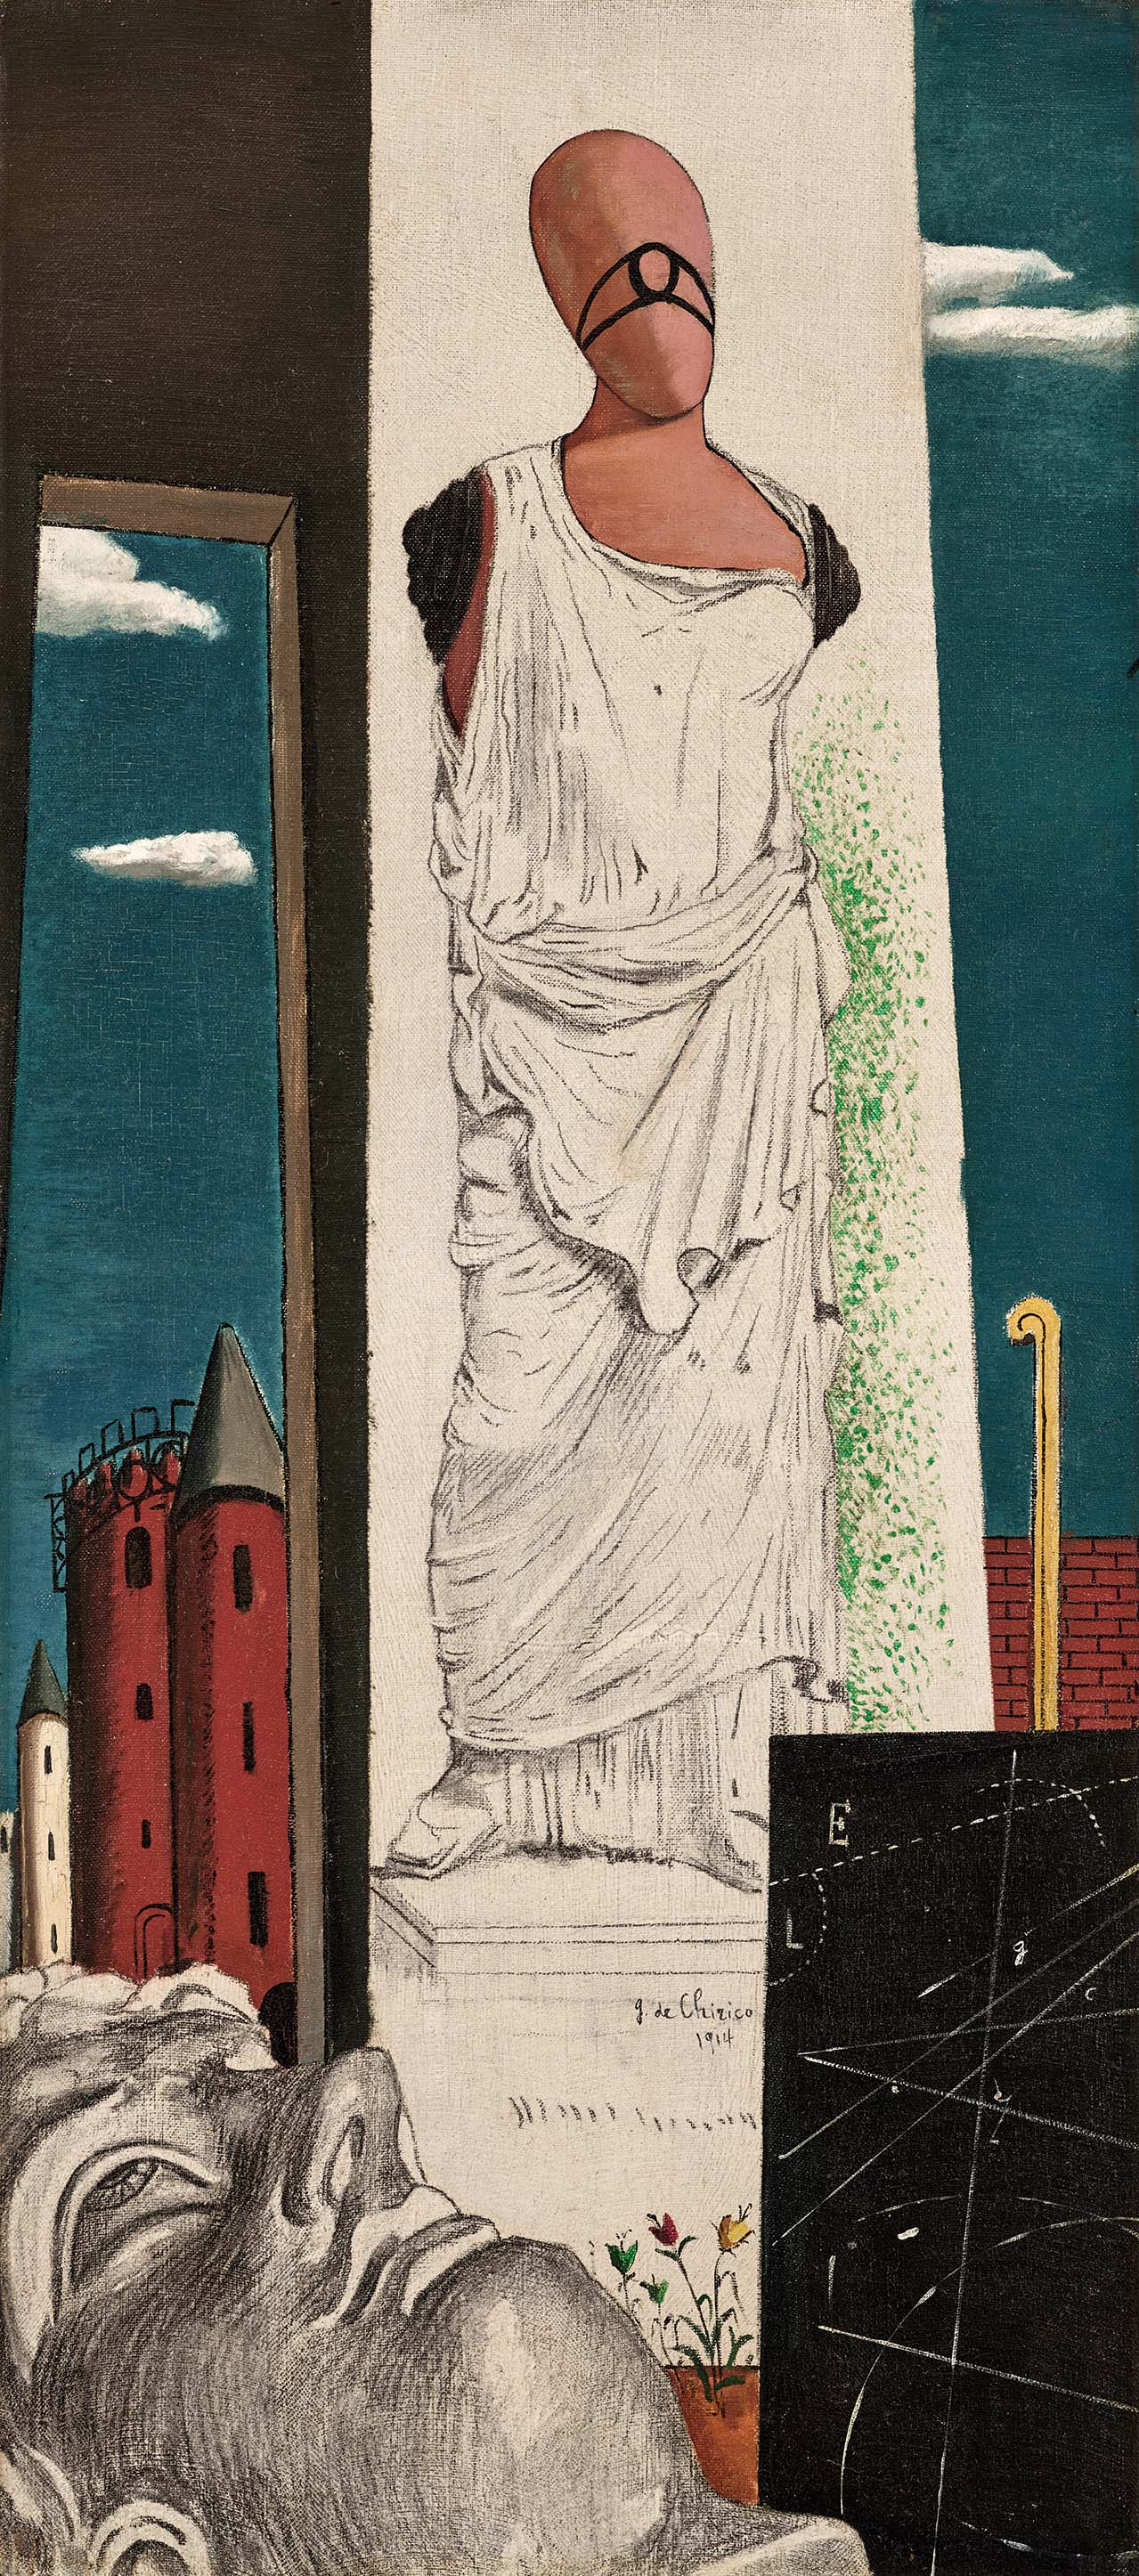 Giorgio de Chirico, Die Reise ohne Ende Le Voyage sans fin The Endless Journey Juli / July 1914 Öl auf Leinwand / Oil on canvas 88 × 39 cm Hartford (CT), Wadsworth Atheneum Museum of Art, The Philip L. Goodwin Collection, Schenkung von / gift of James L.